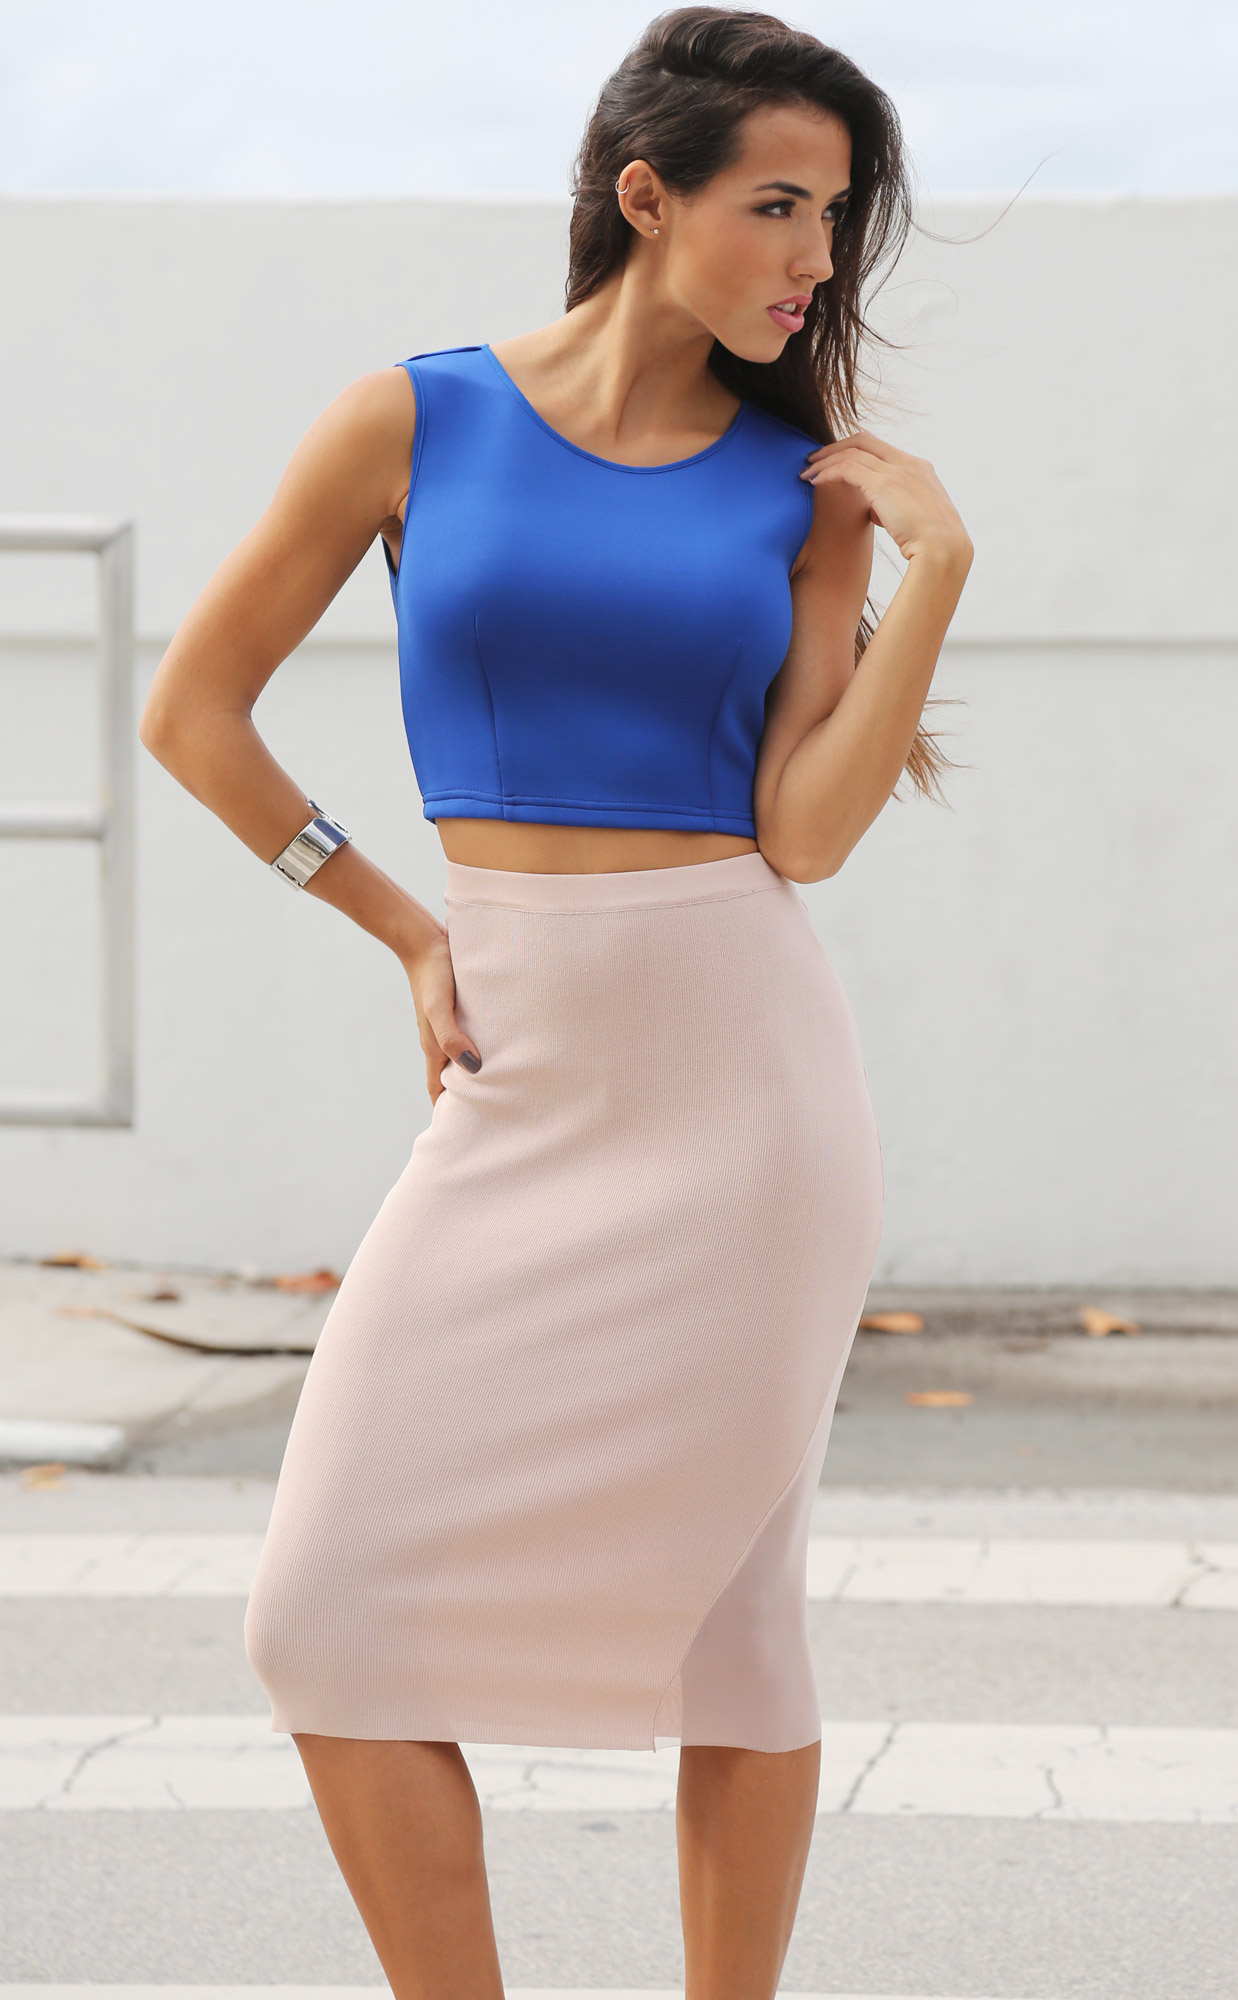 Stylish Pencil Skirt outfit examples Concrete-Runway-Nude-Sheer-Slit-Pencil-Skirt